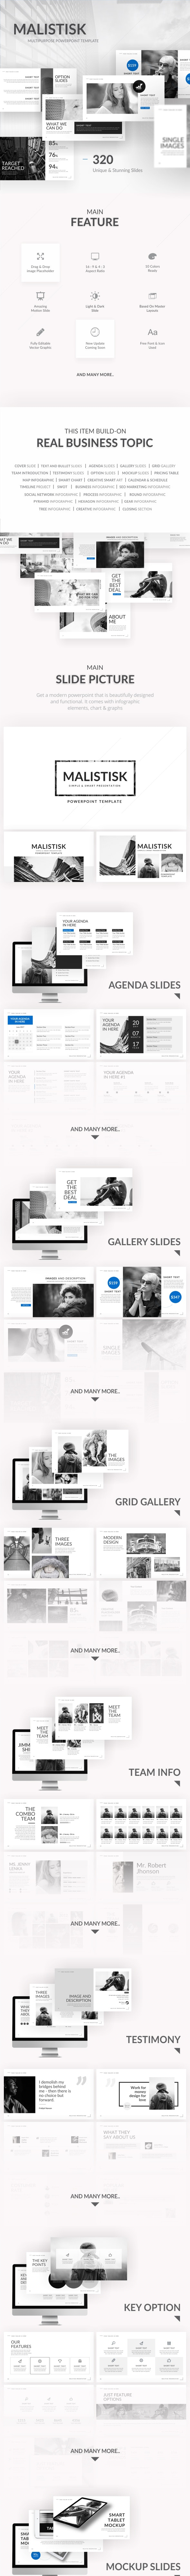 Malistisk - Multipurpose Powerpoint Template - Business PowerPoint Templates